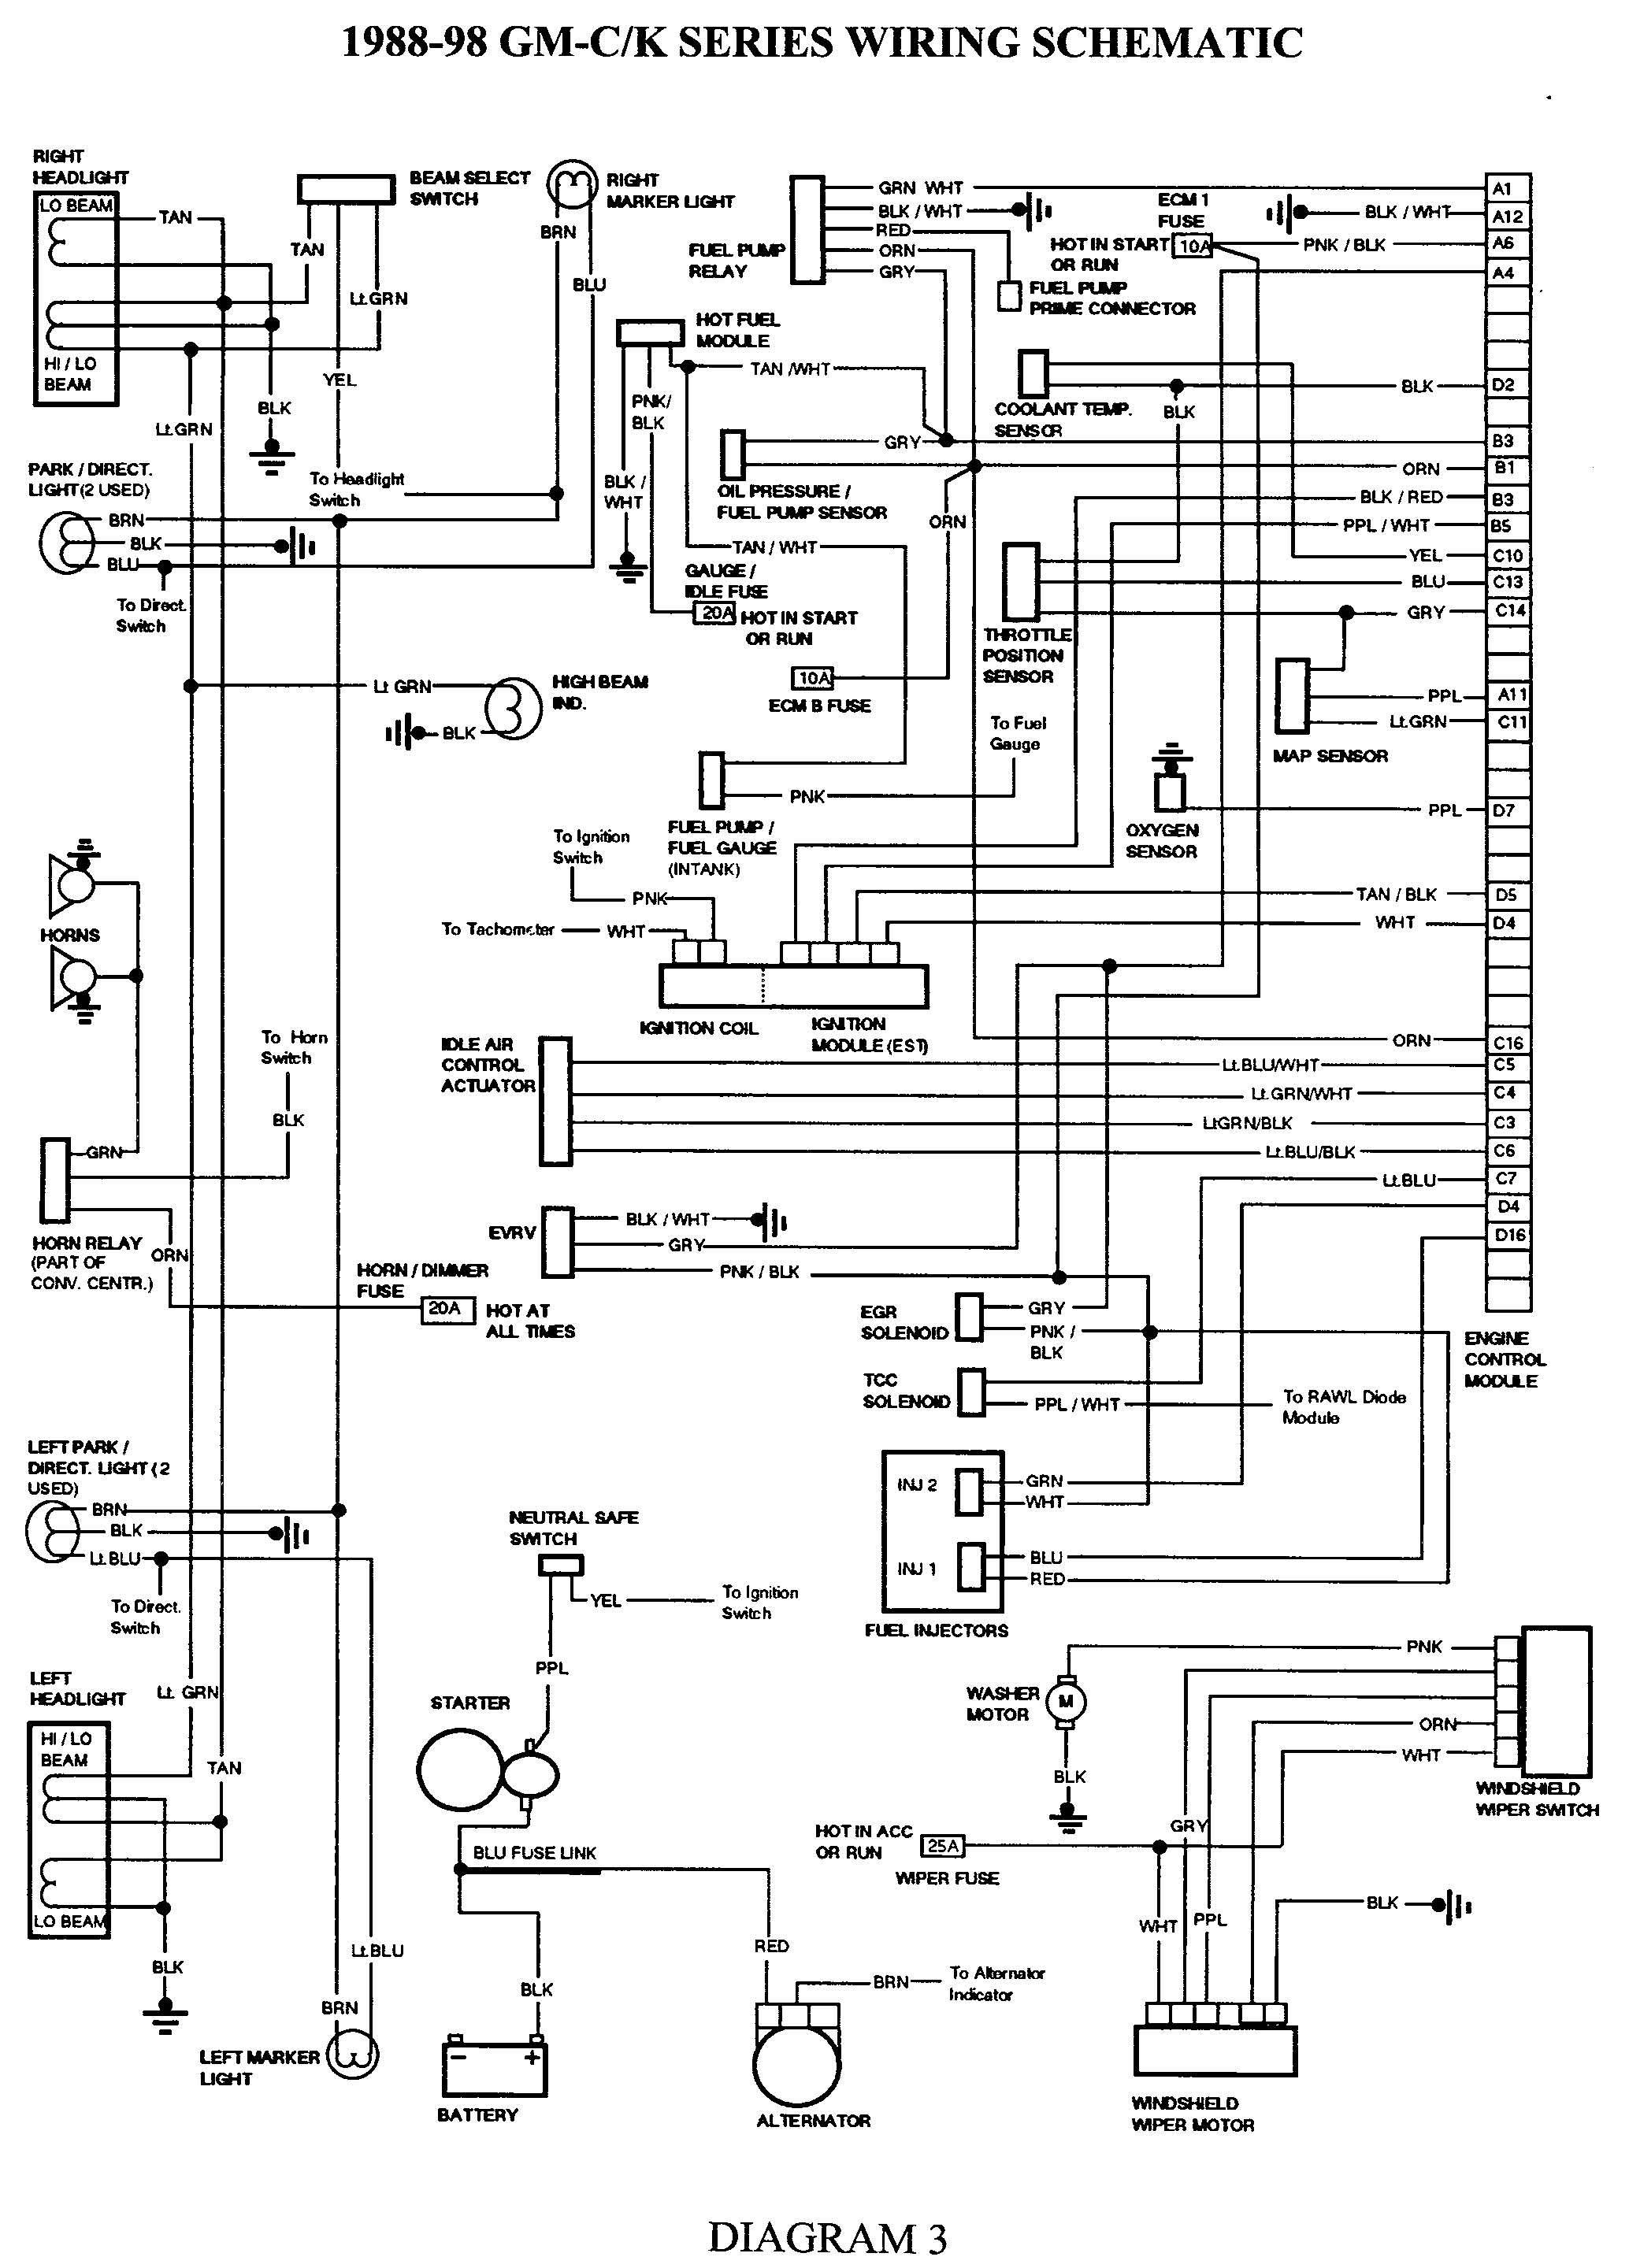 Wiring Diagram - bookingritzcarlton.info | Electrical diagram, Chevy 1500, Electrical  wiring diagramPinterest